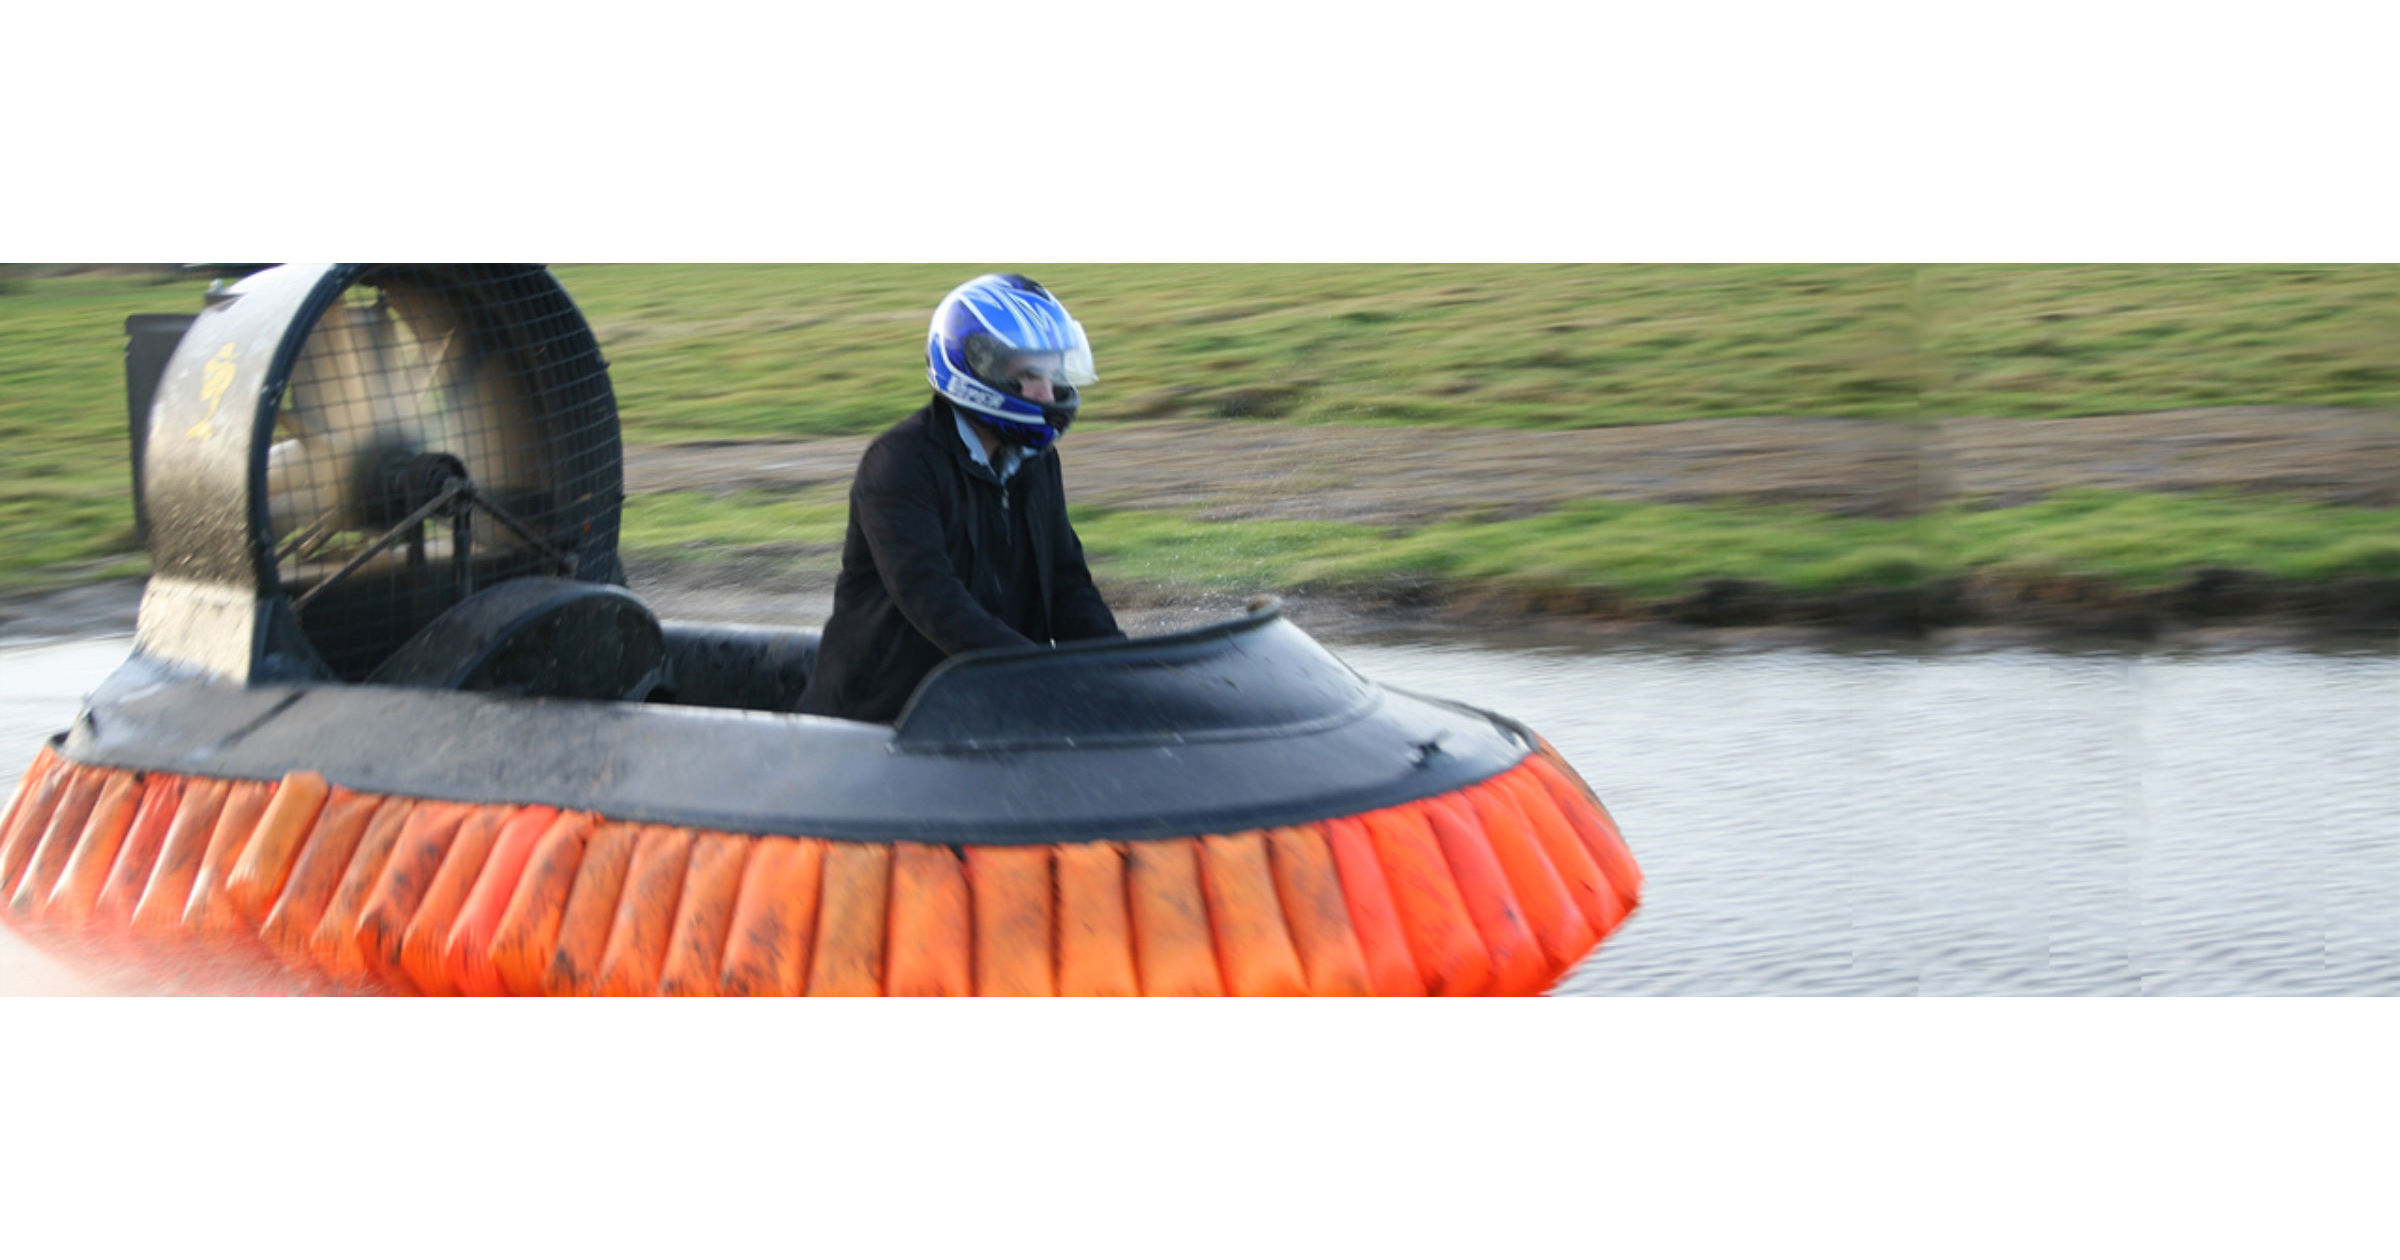 Hovercrafts & Paintballing Hen Party